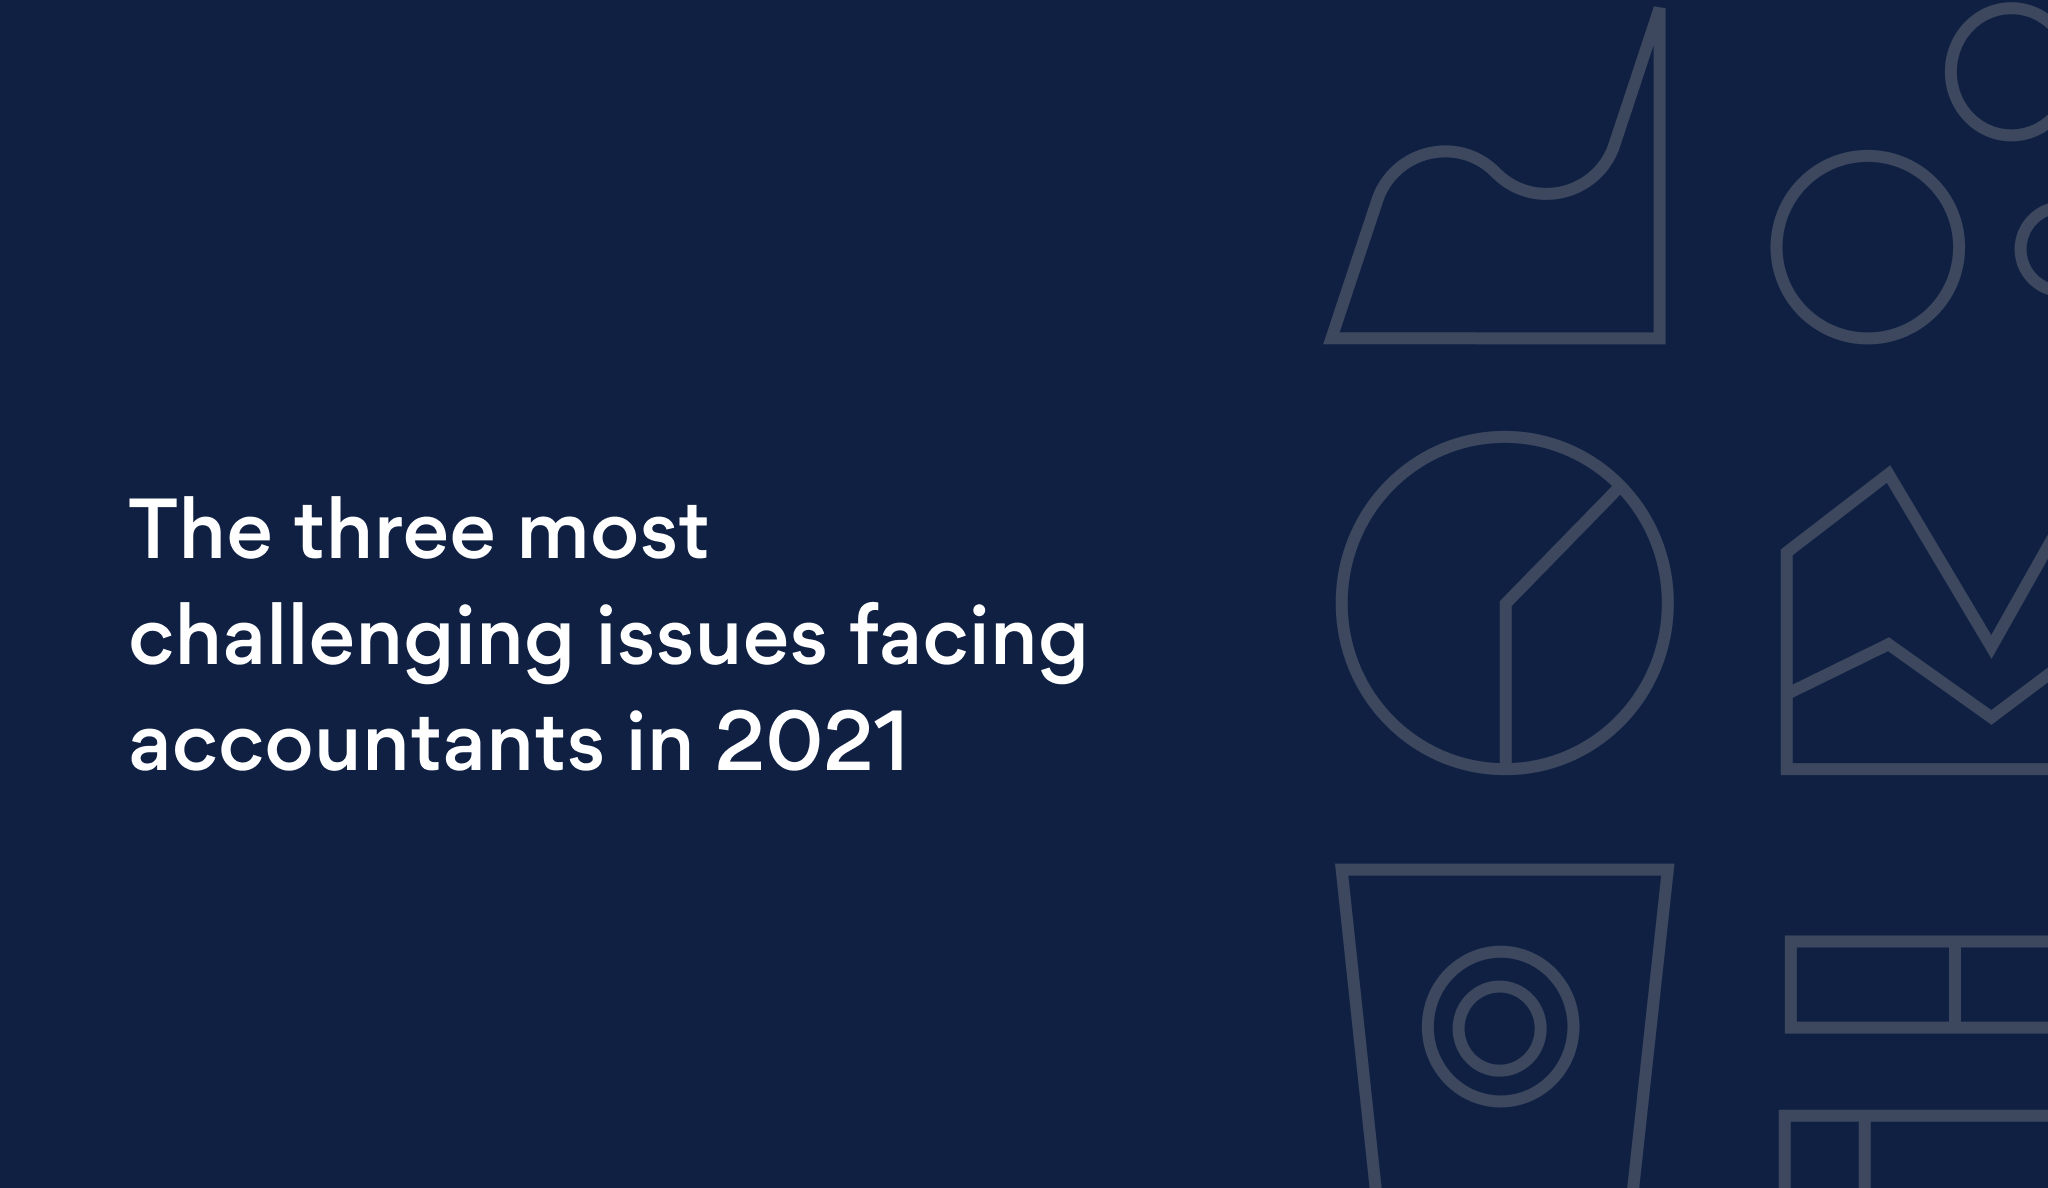 The three most challenging issues facing accountants in 2021